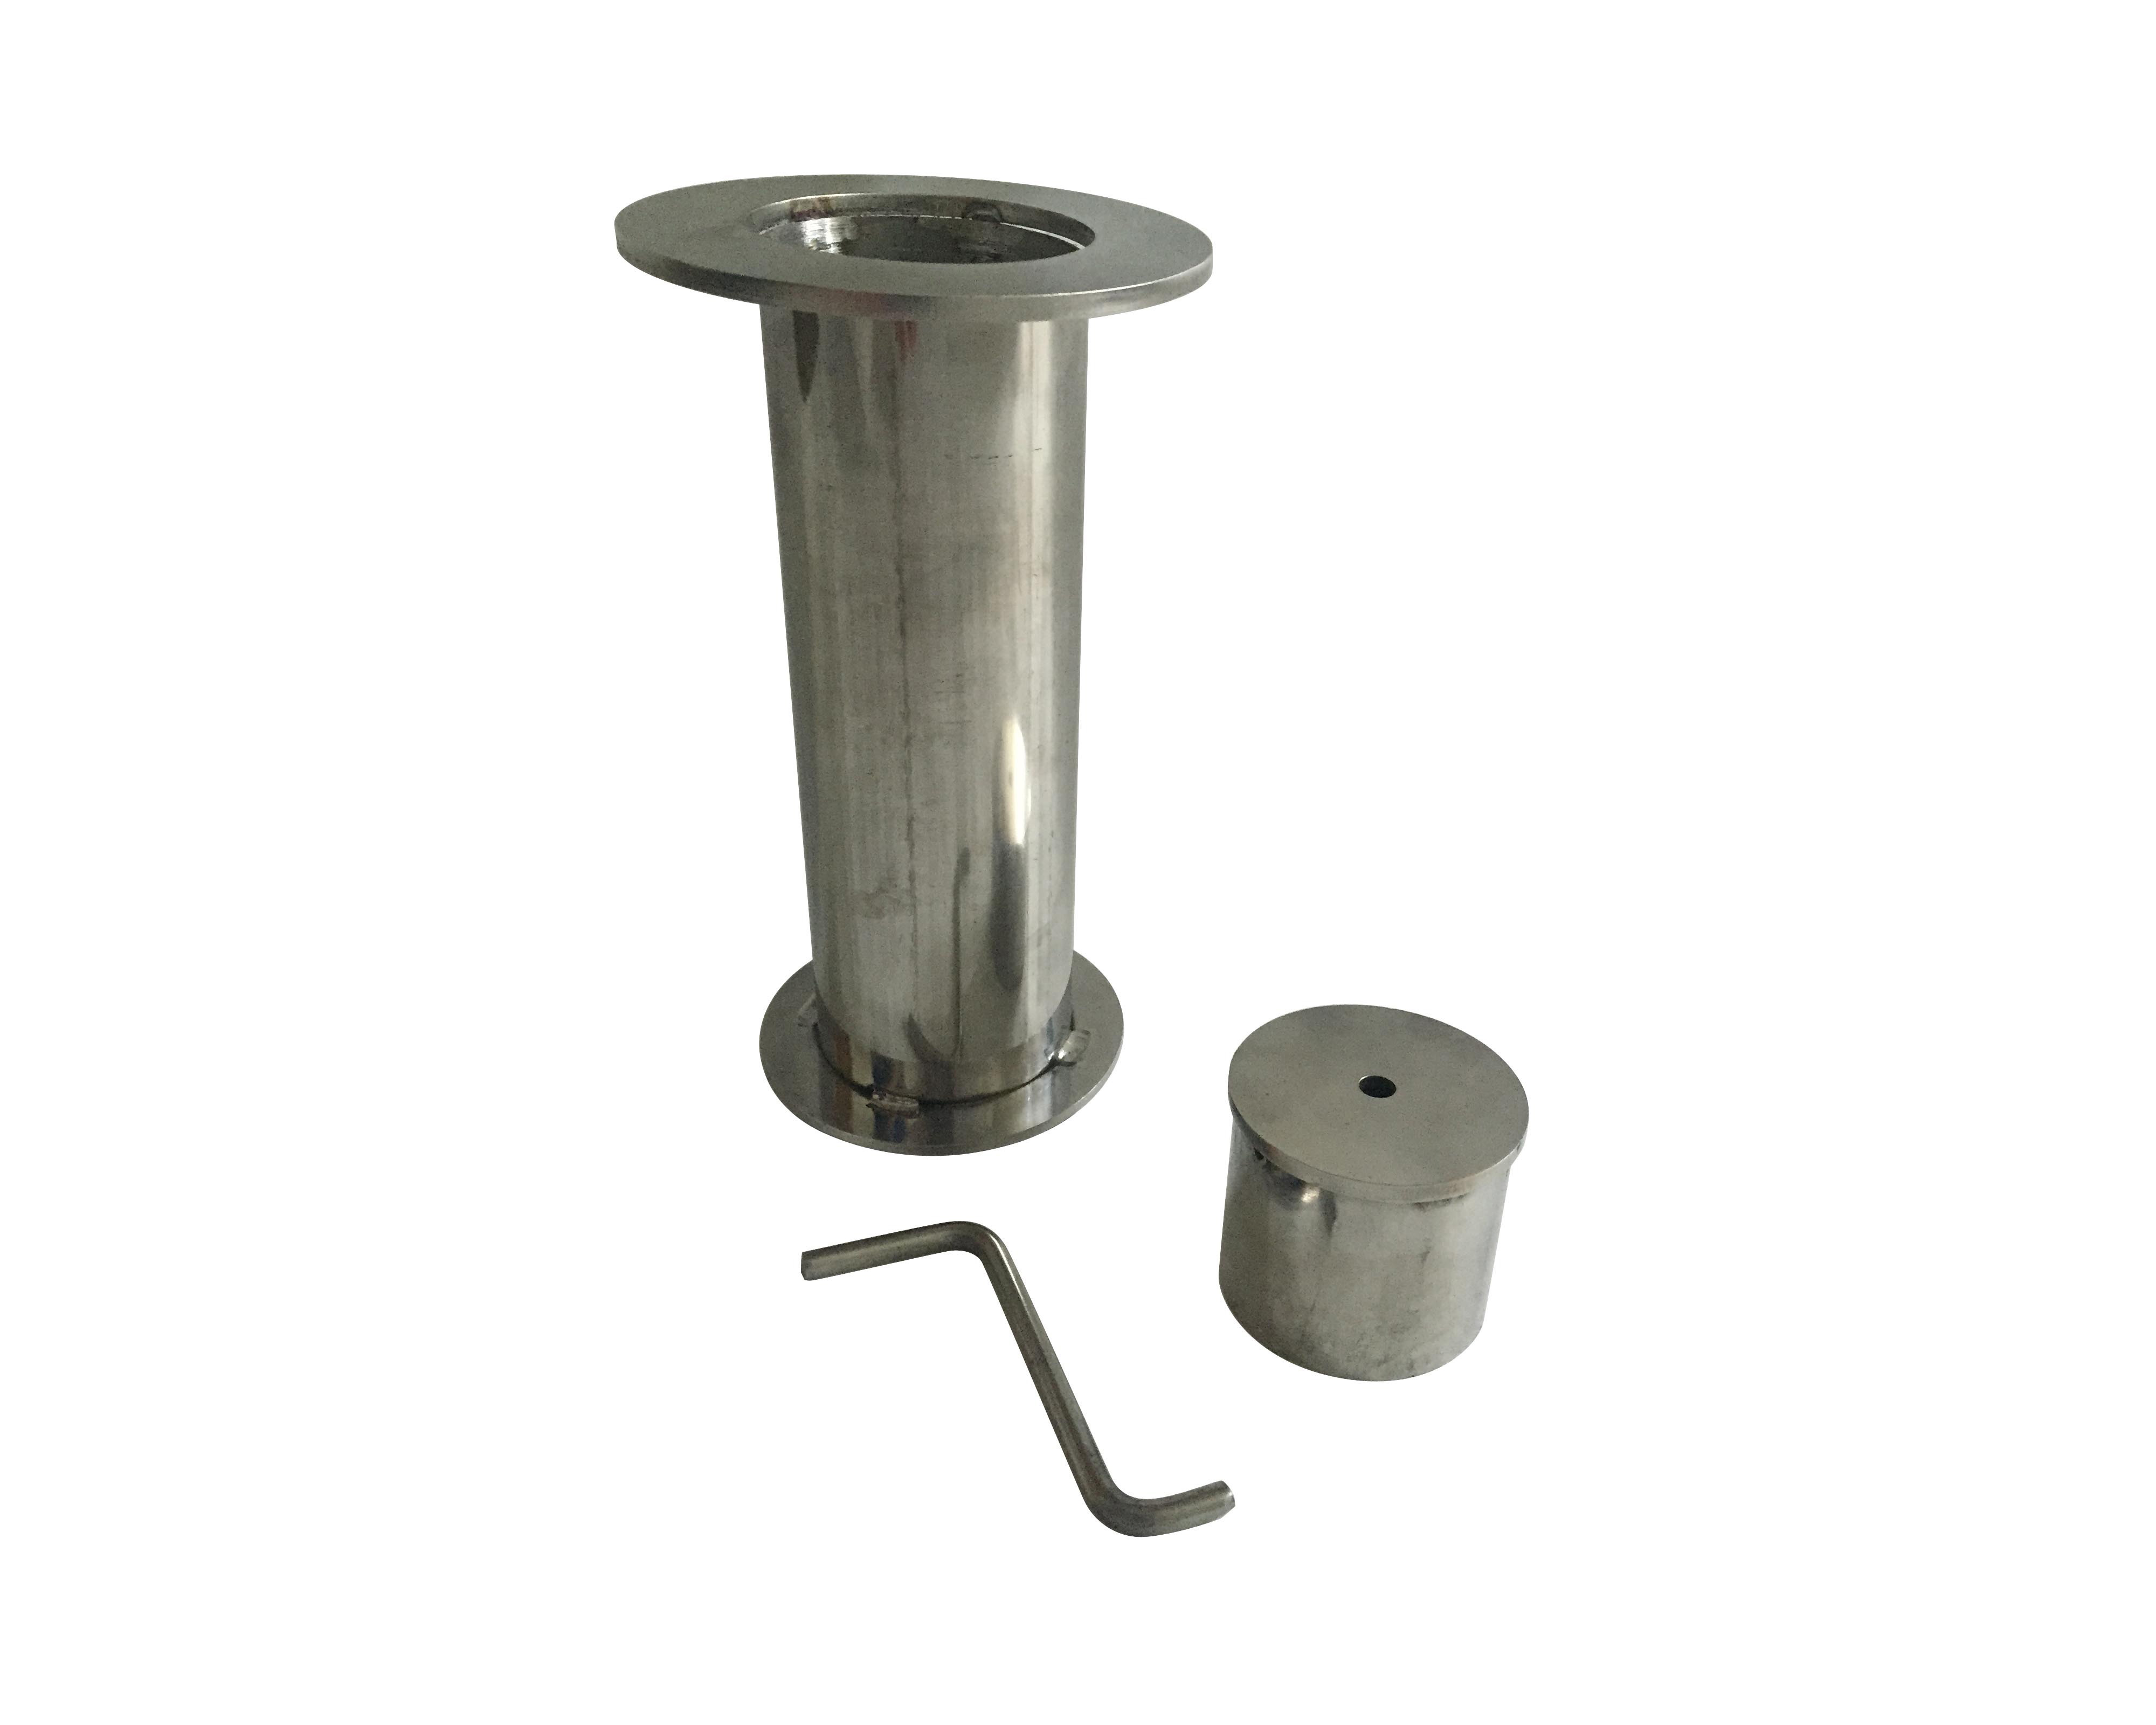 Stainless Steel Deck Anchor S R Smith